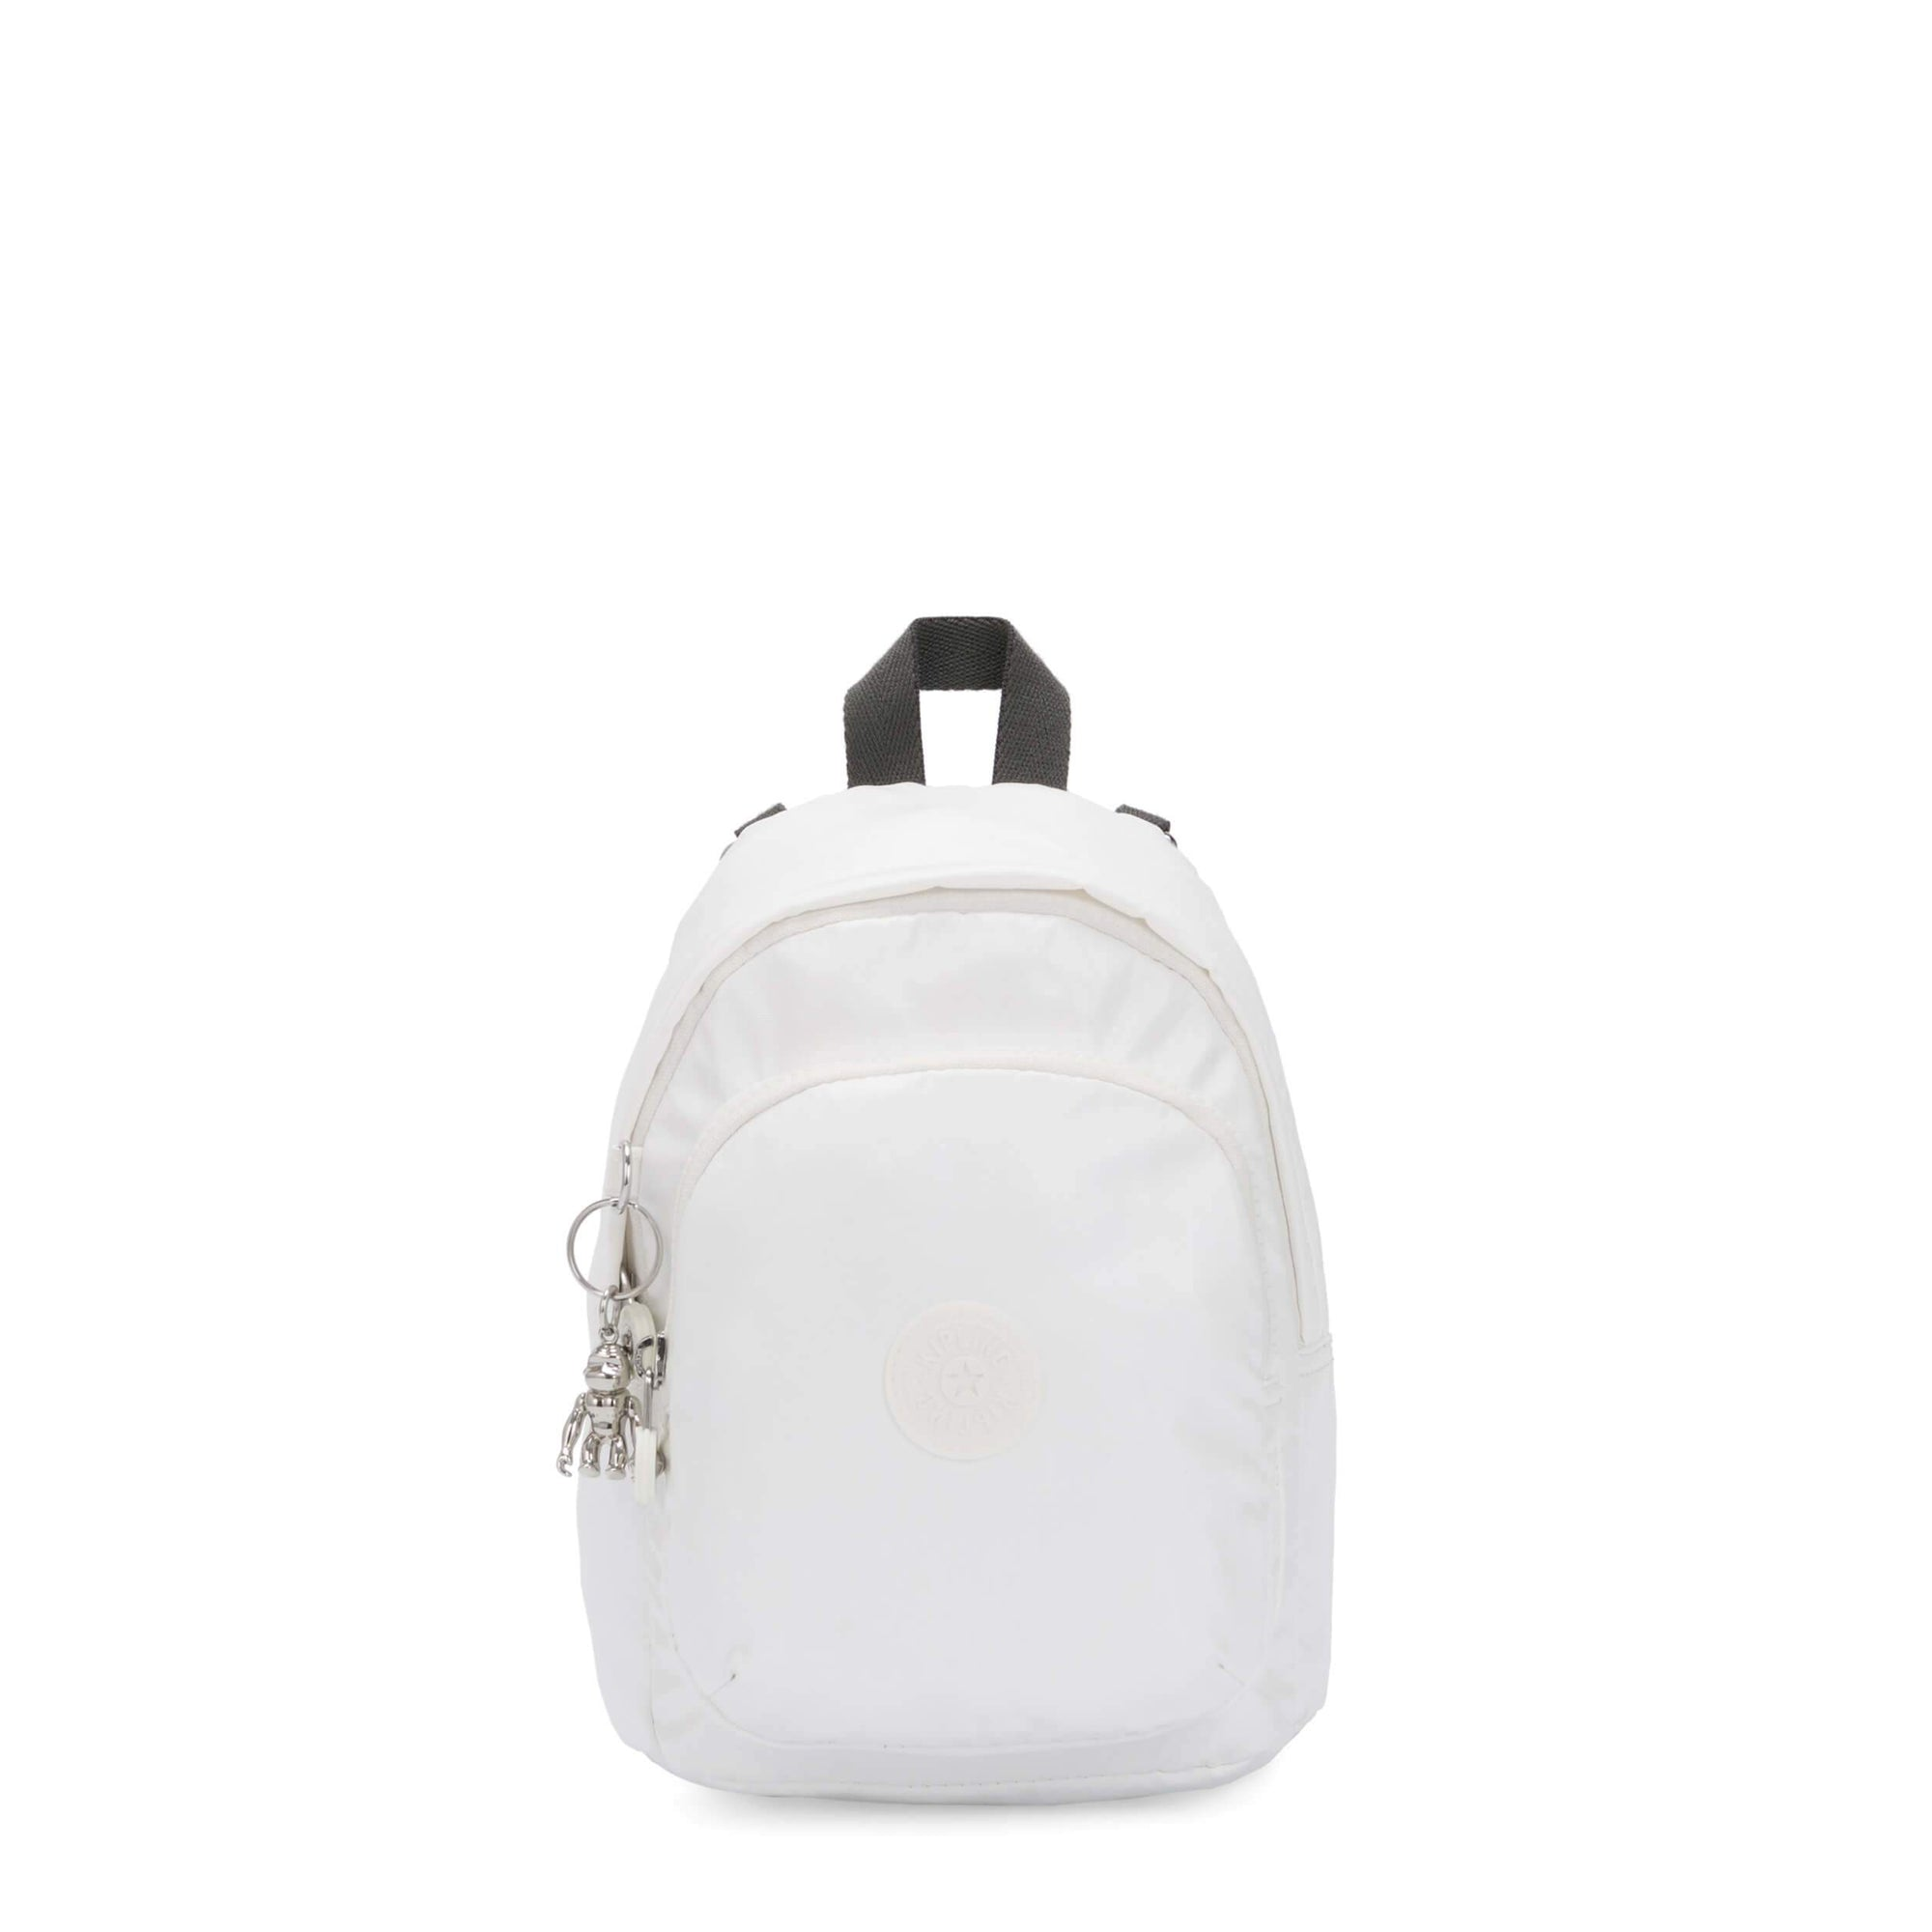 Backpack Kipling Delia Compact White Metallic KI420447I